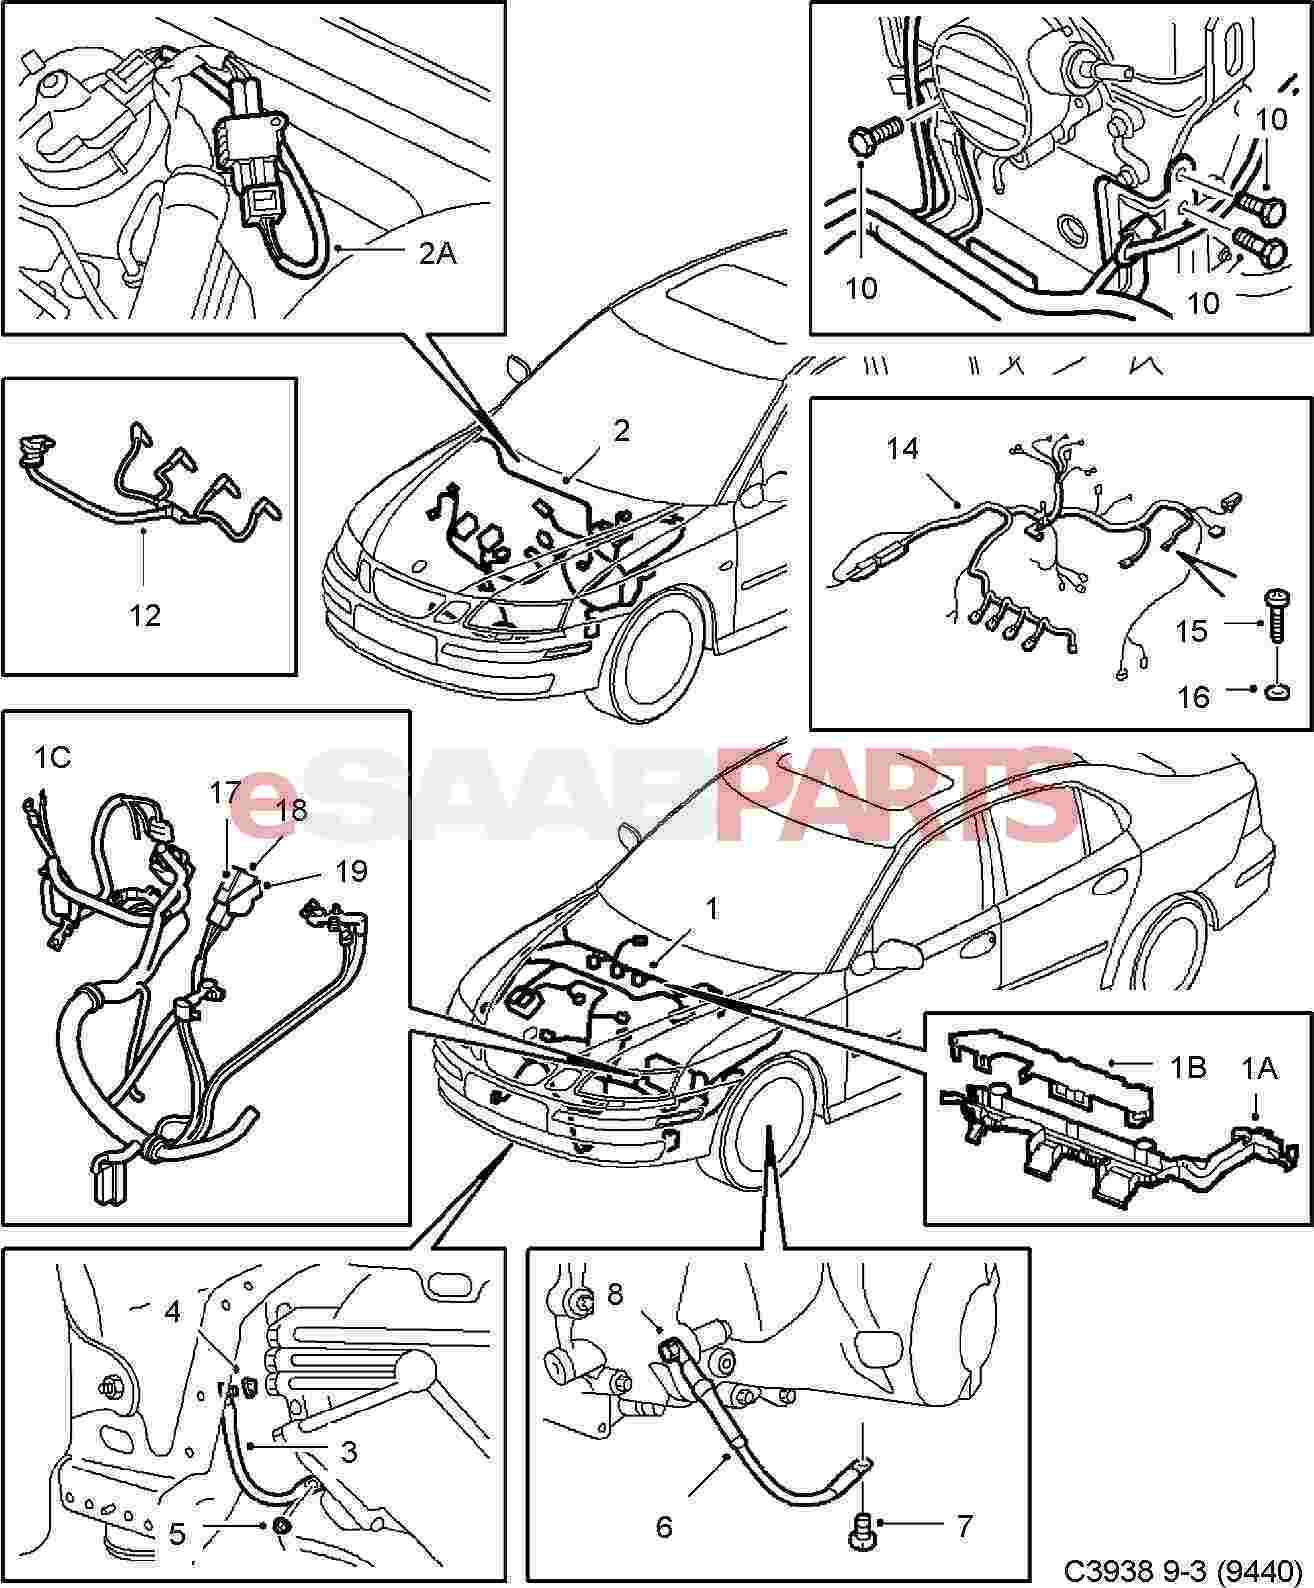 esaabparts com saab 9 3 9440 u003e electrical parts u003e wiring harness rh esaabparts com 2007 saab 9-3 engine diagram 99 saab 9-3 engine diagram